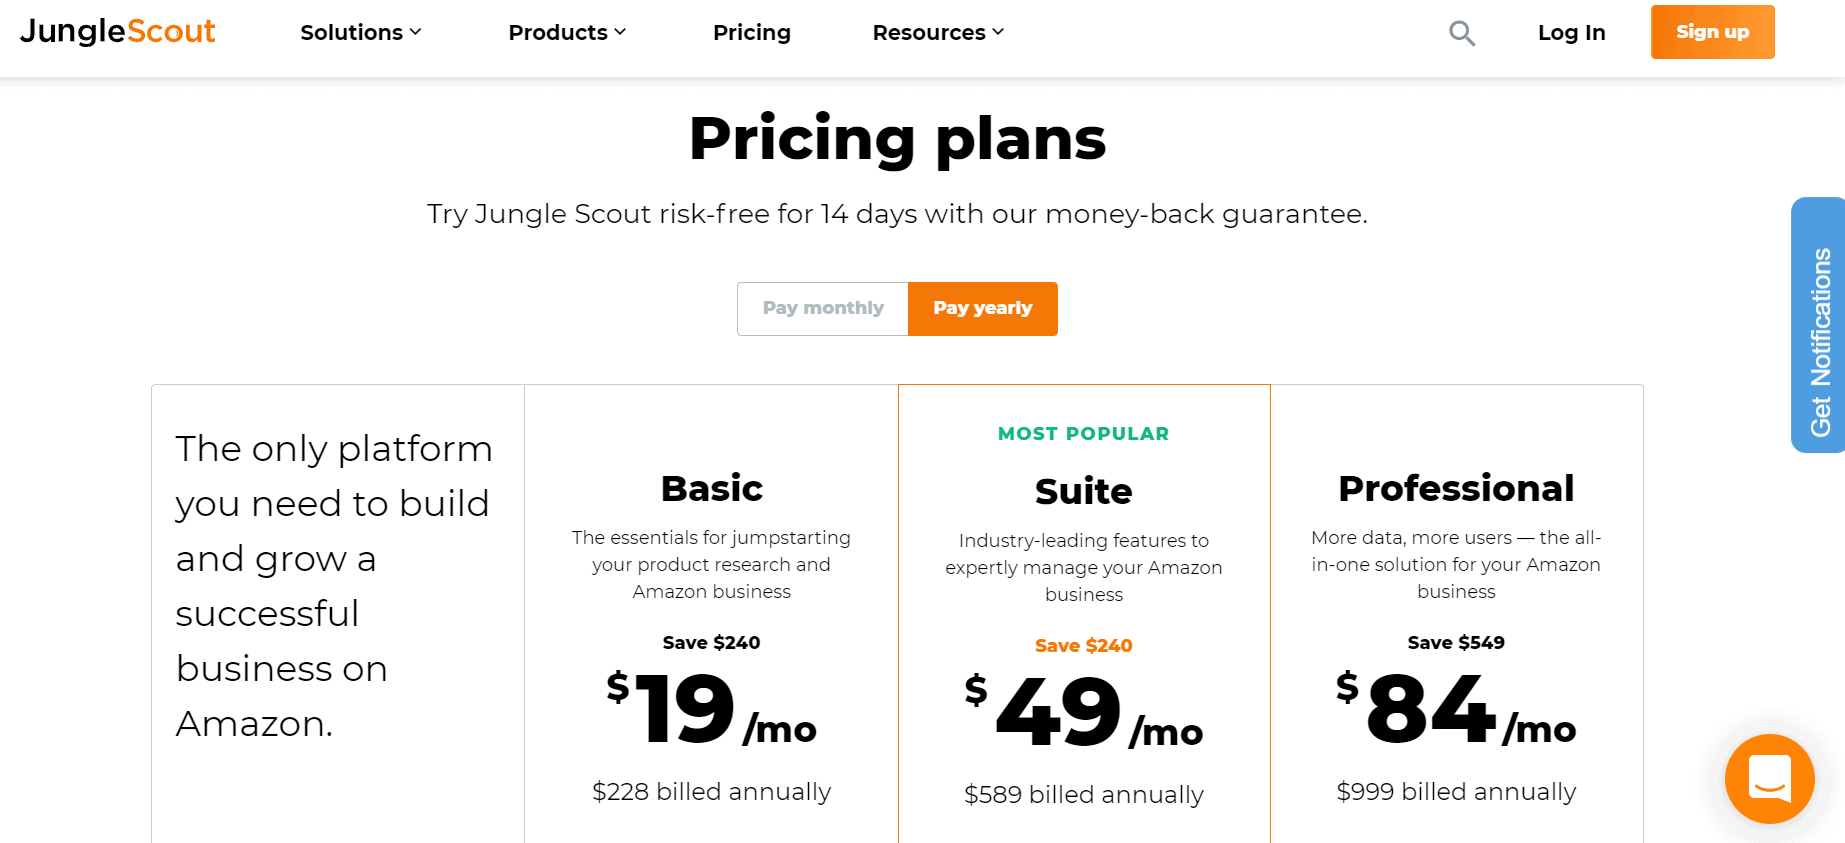 jungle scout pricing plans